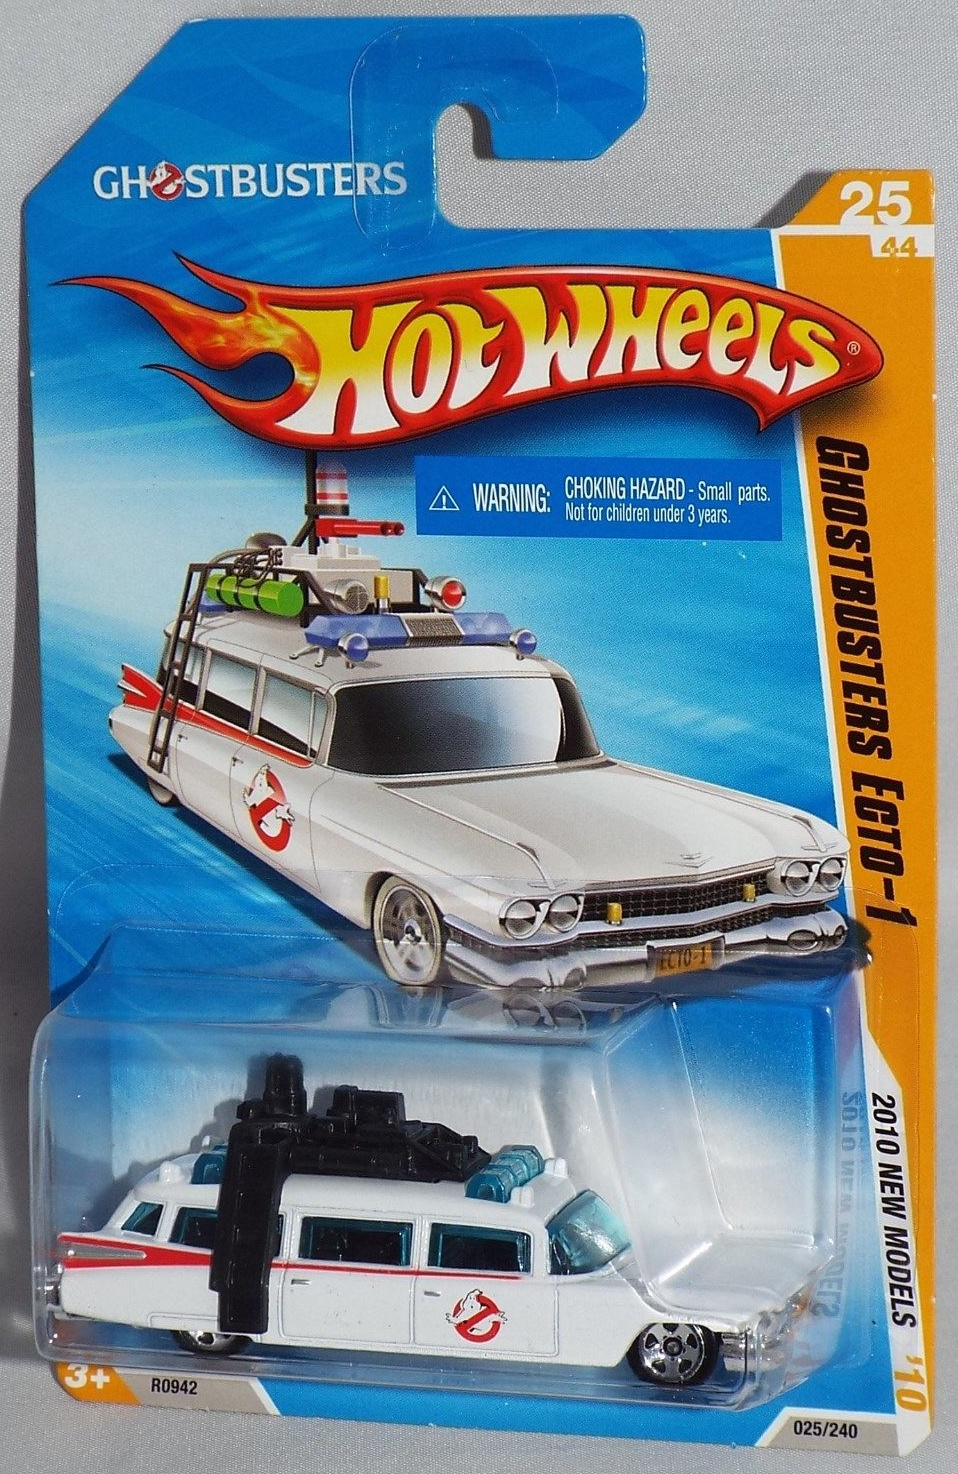 2020 Hot Wheels Ghostbusters Ecto 1